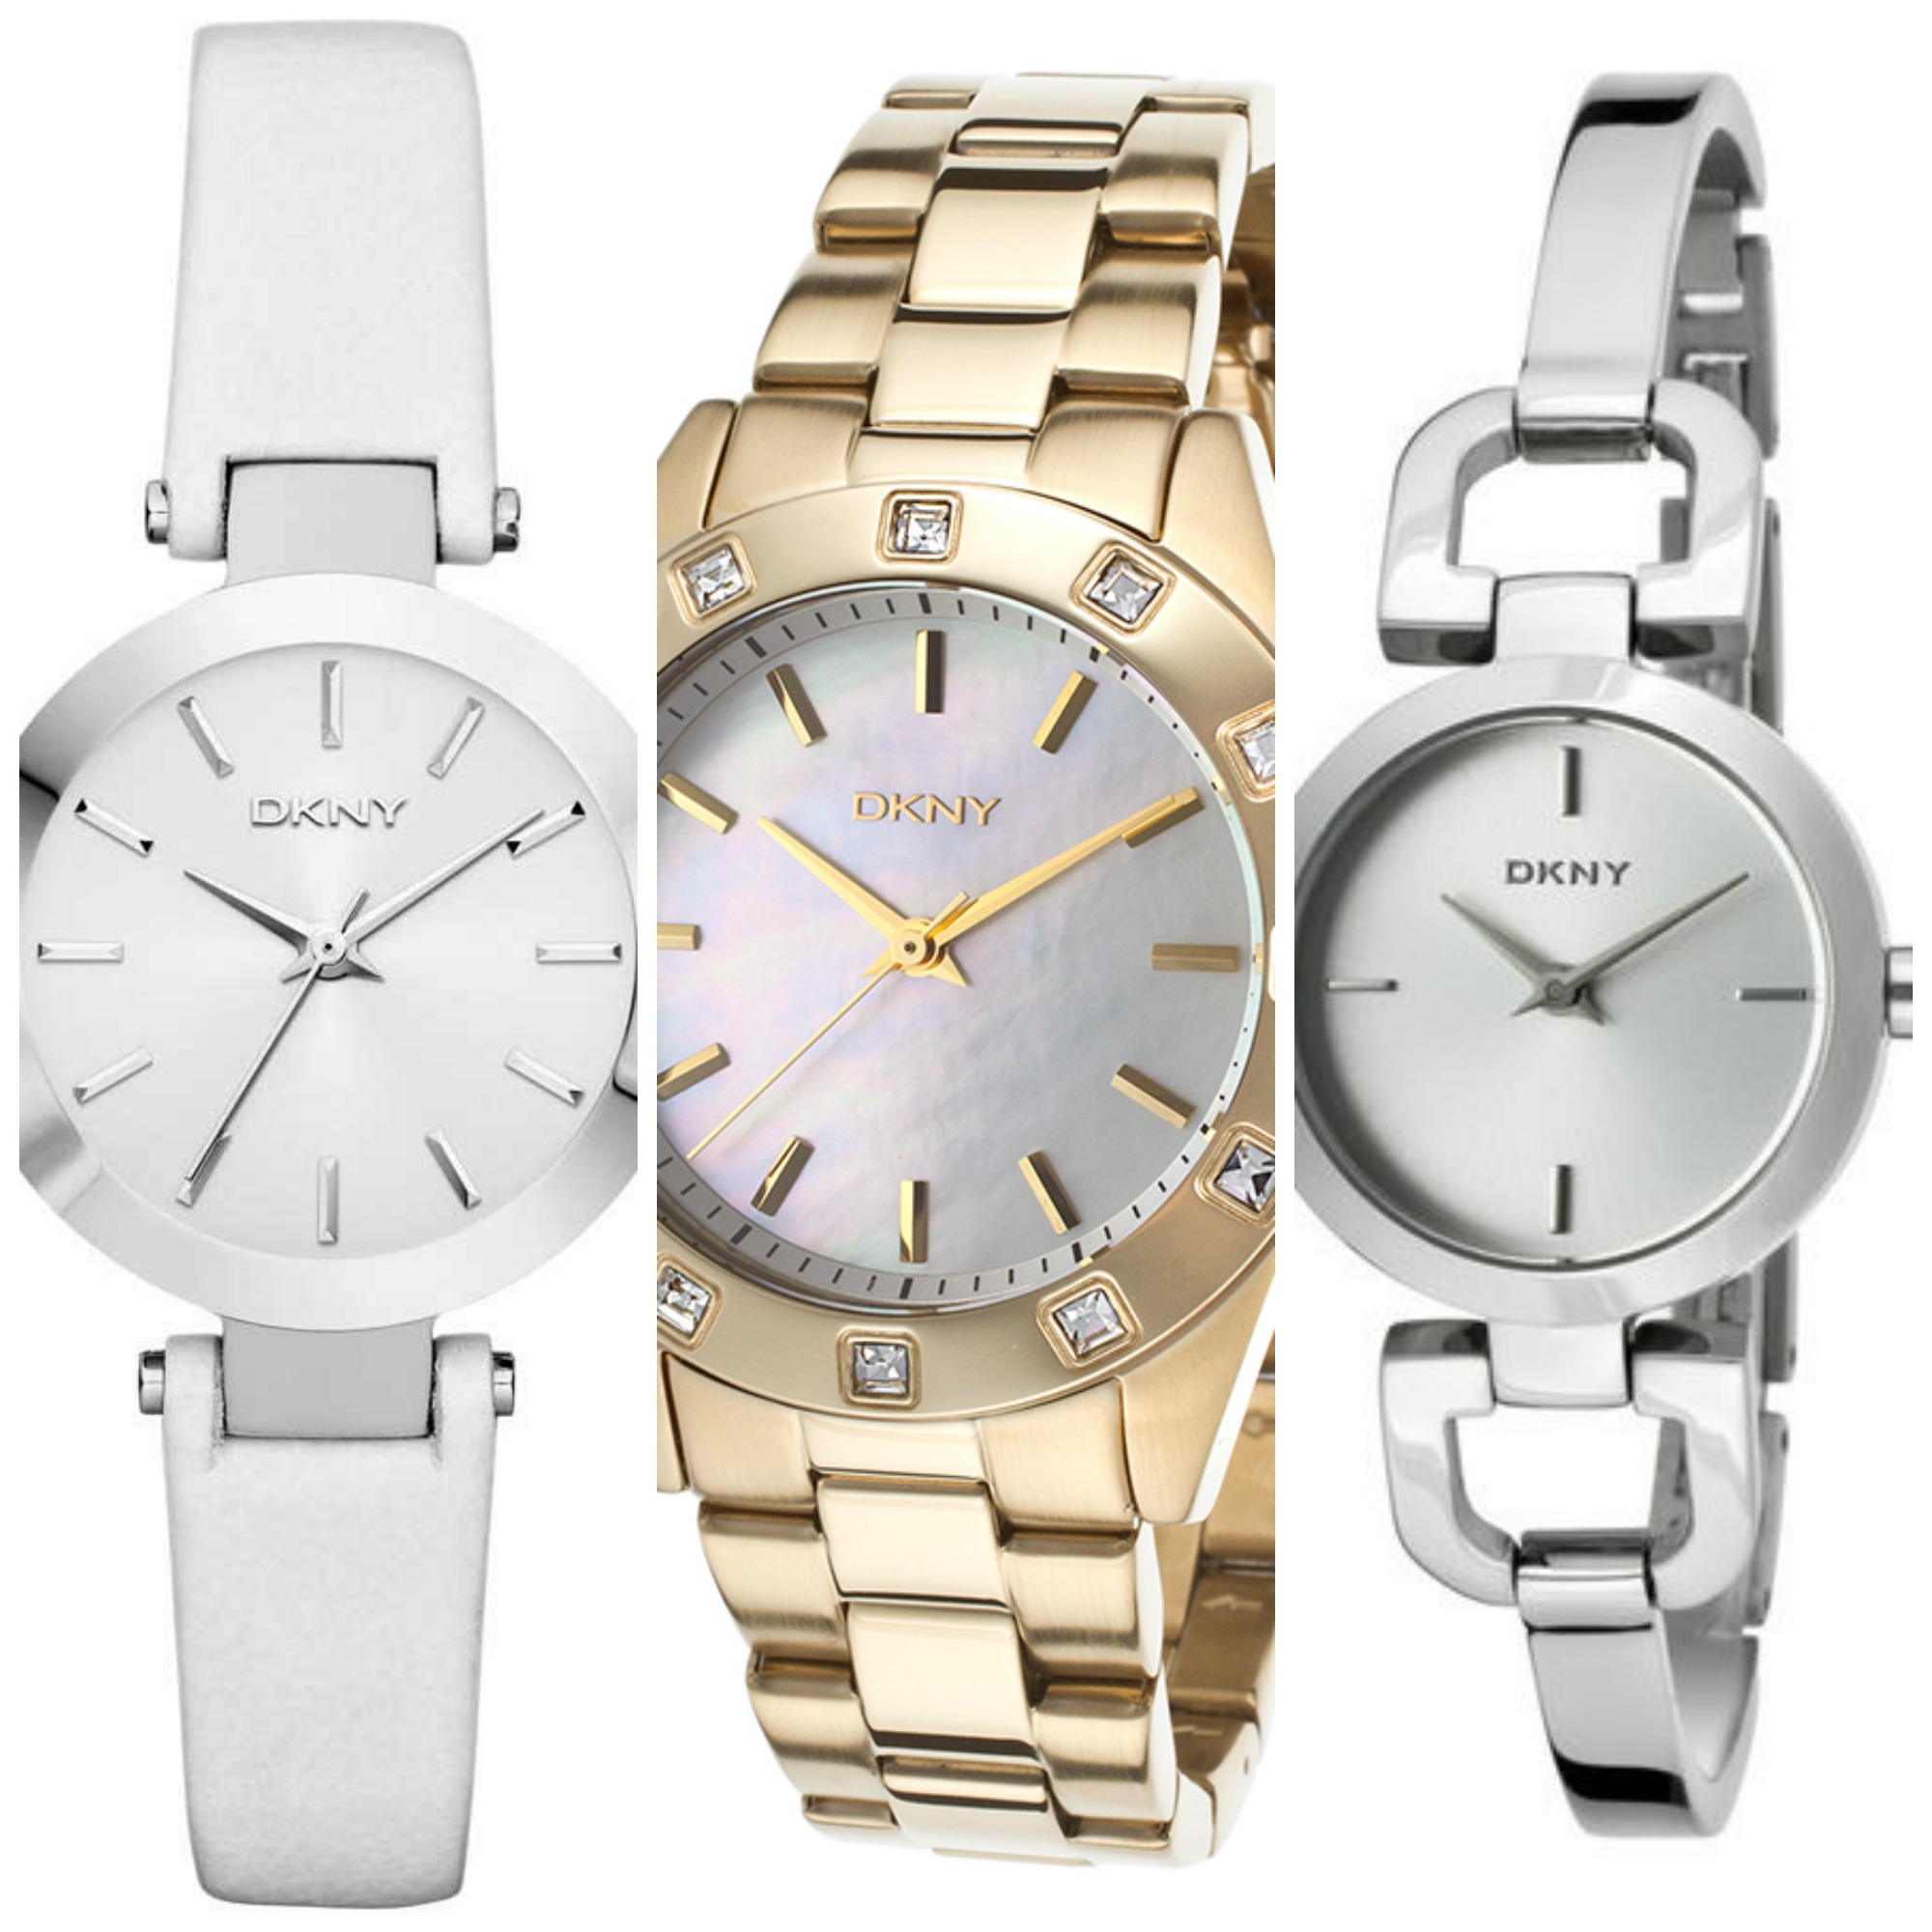 4a7ae6750f85 Top 9 Most Popular DKNY Watches Under £100